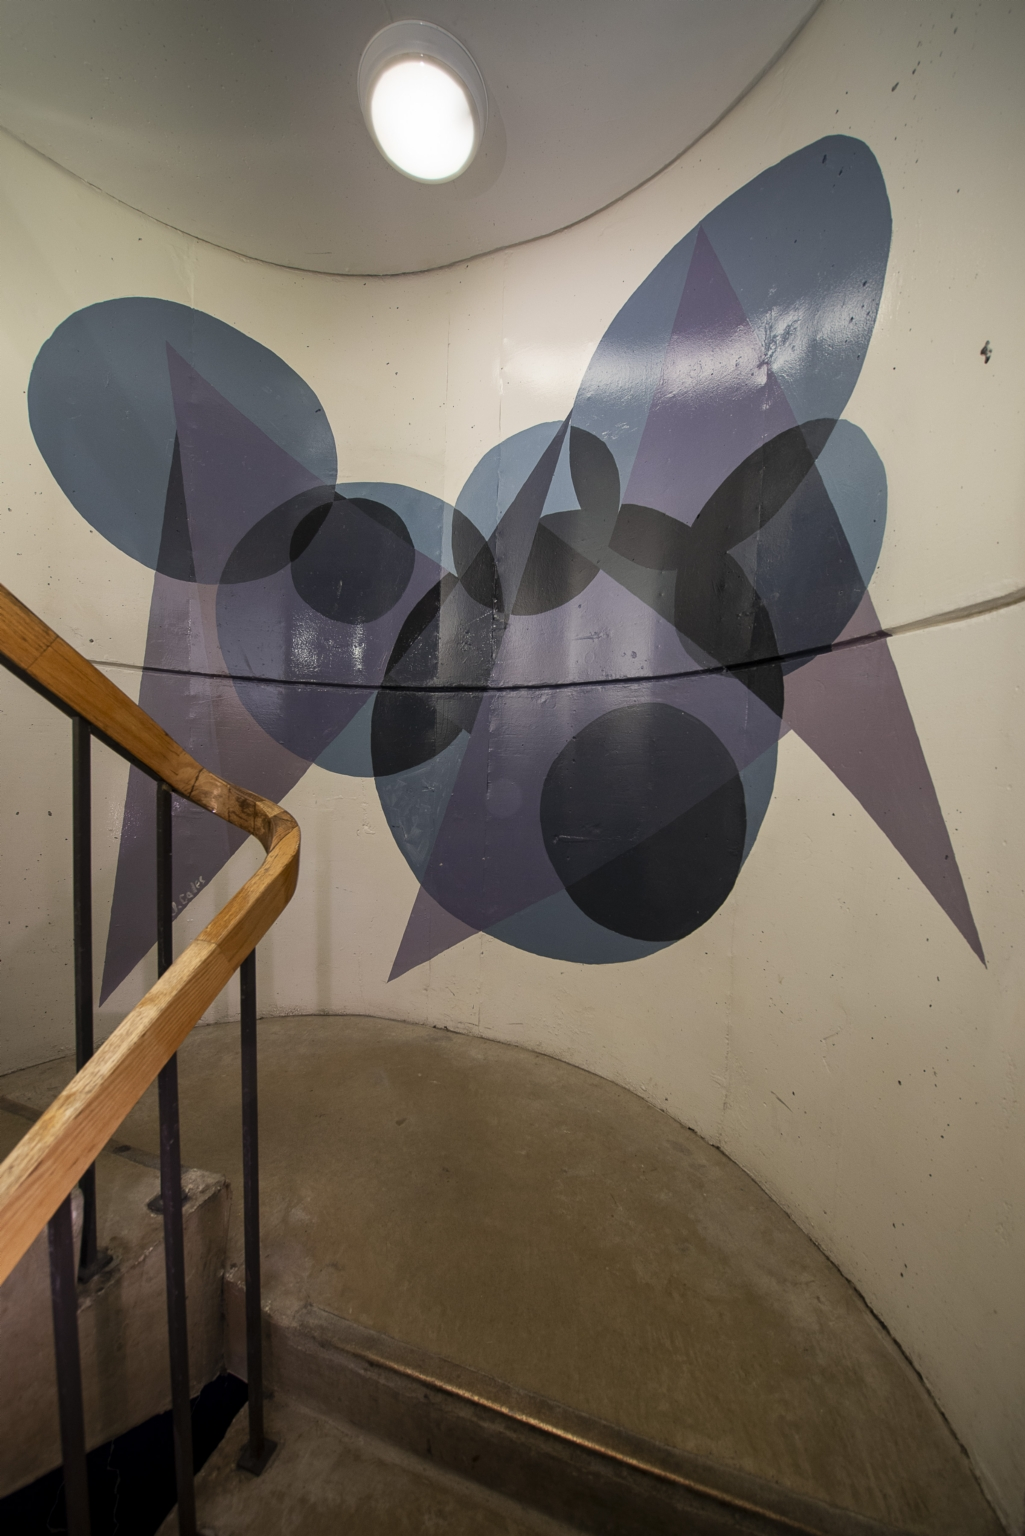 East stairwell, between 23rd and 24th floors